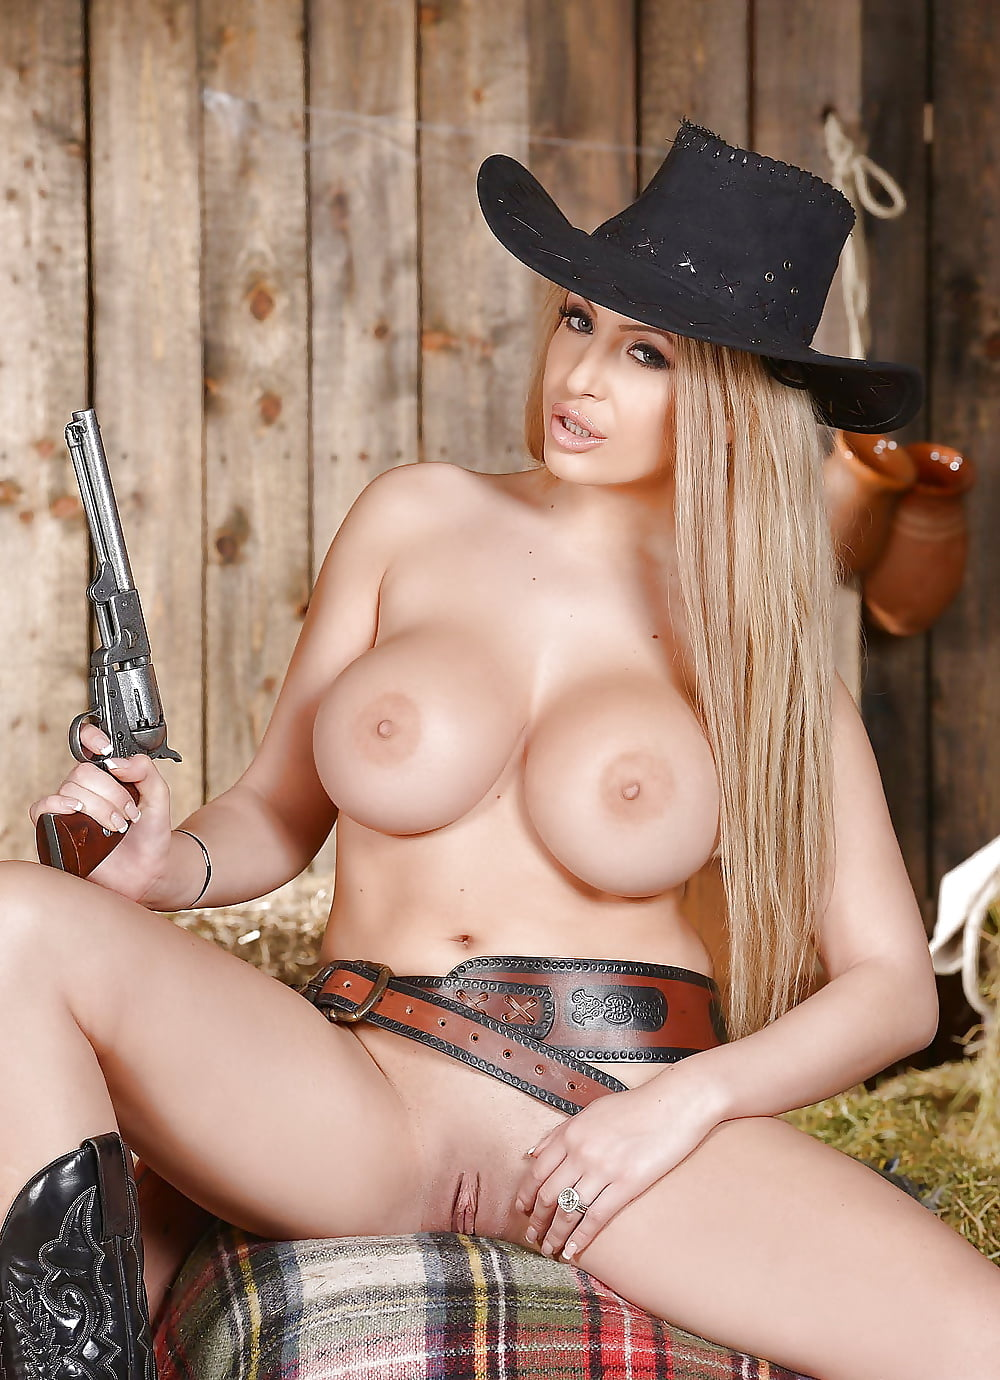 Topless Cowgirl